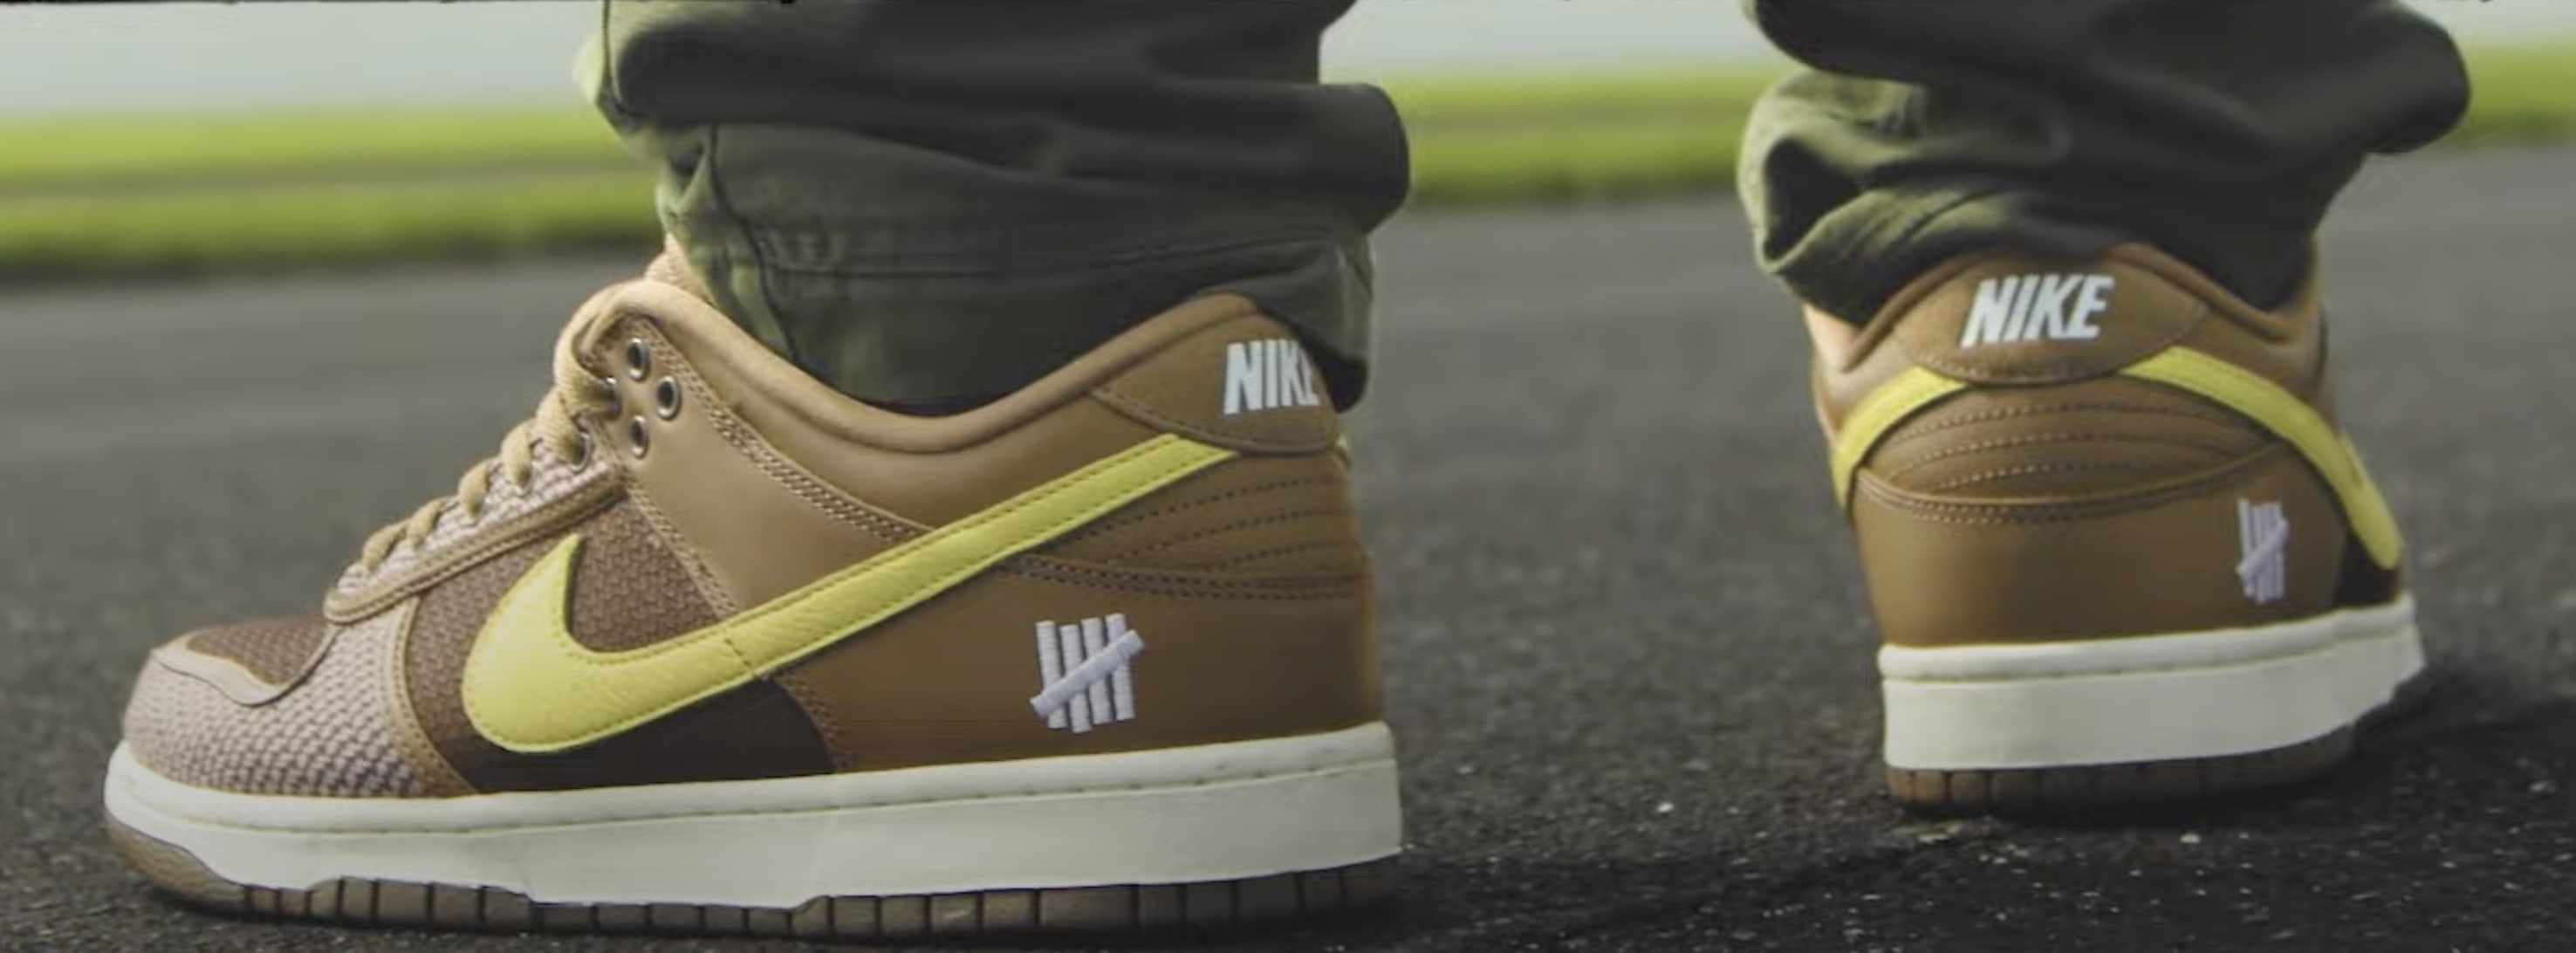 Undefeated x Nike Dunk Low Heel